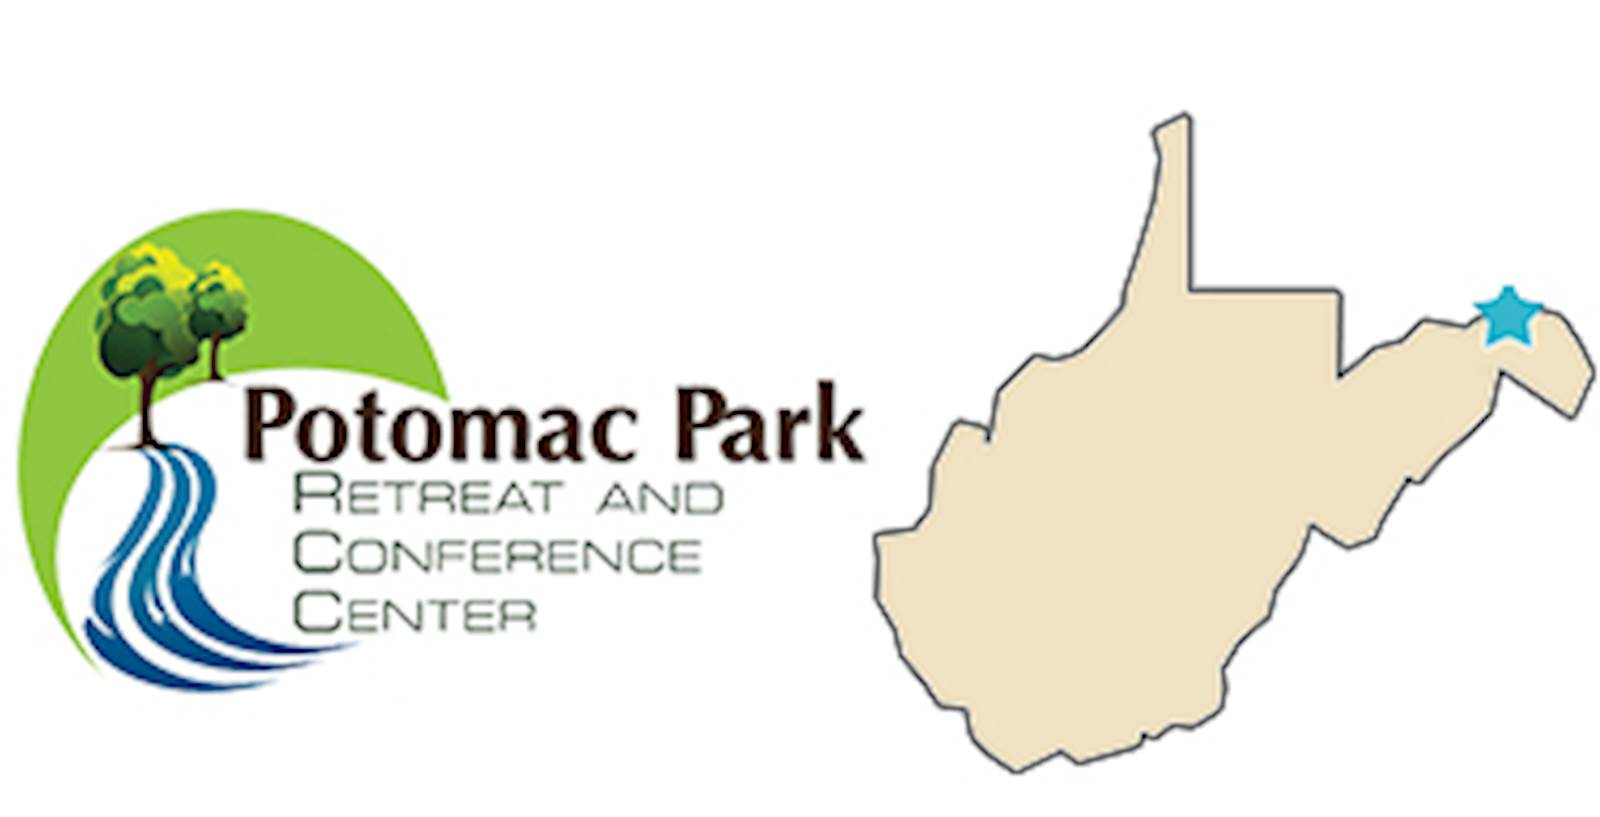 Potomac Park Retreat & Conference Center in Falling Waters, WV